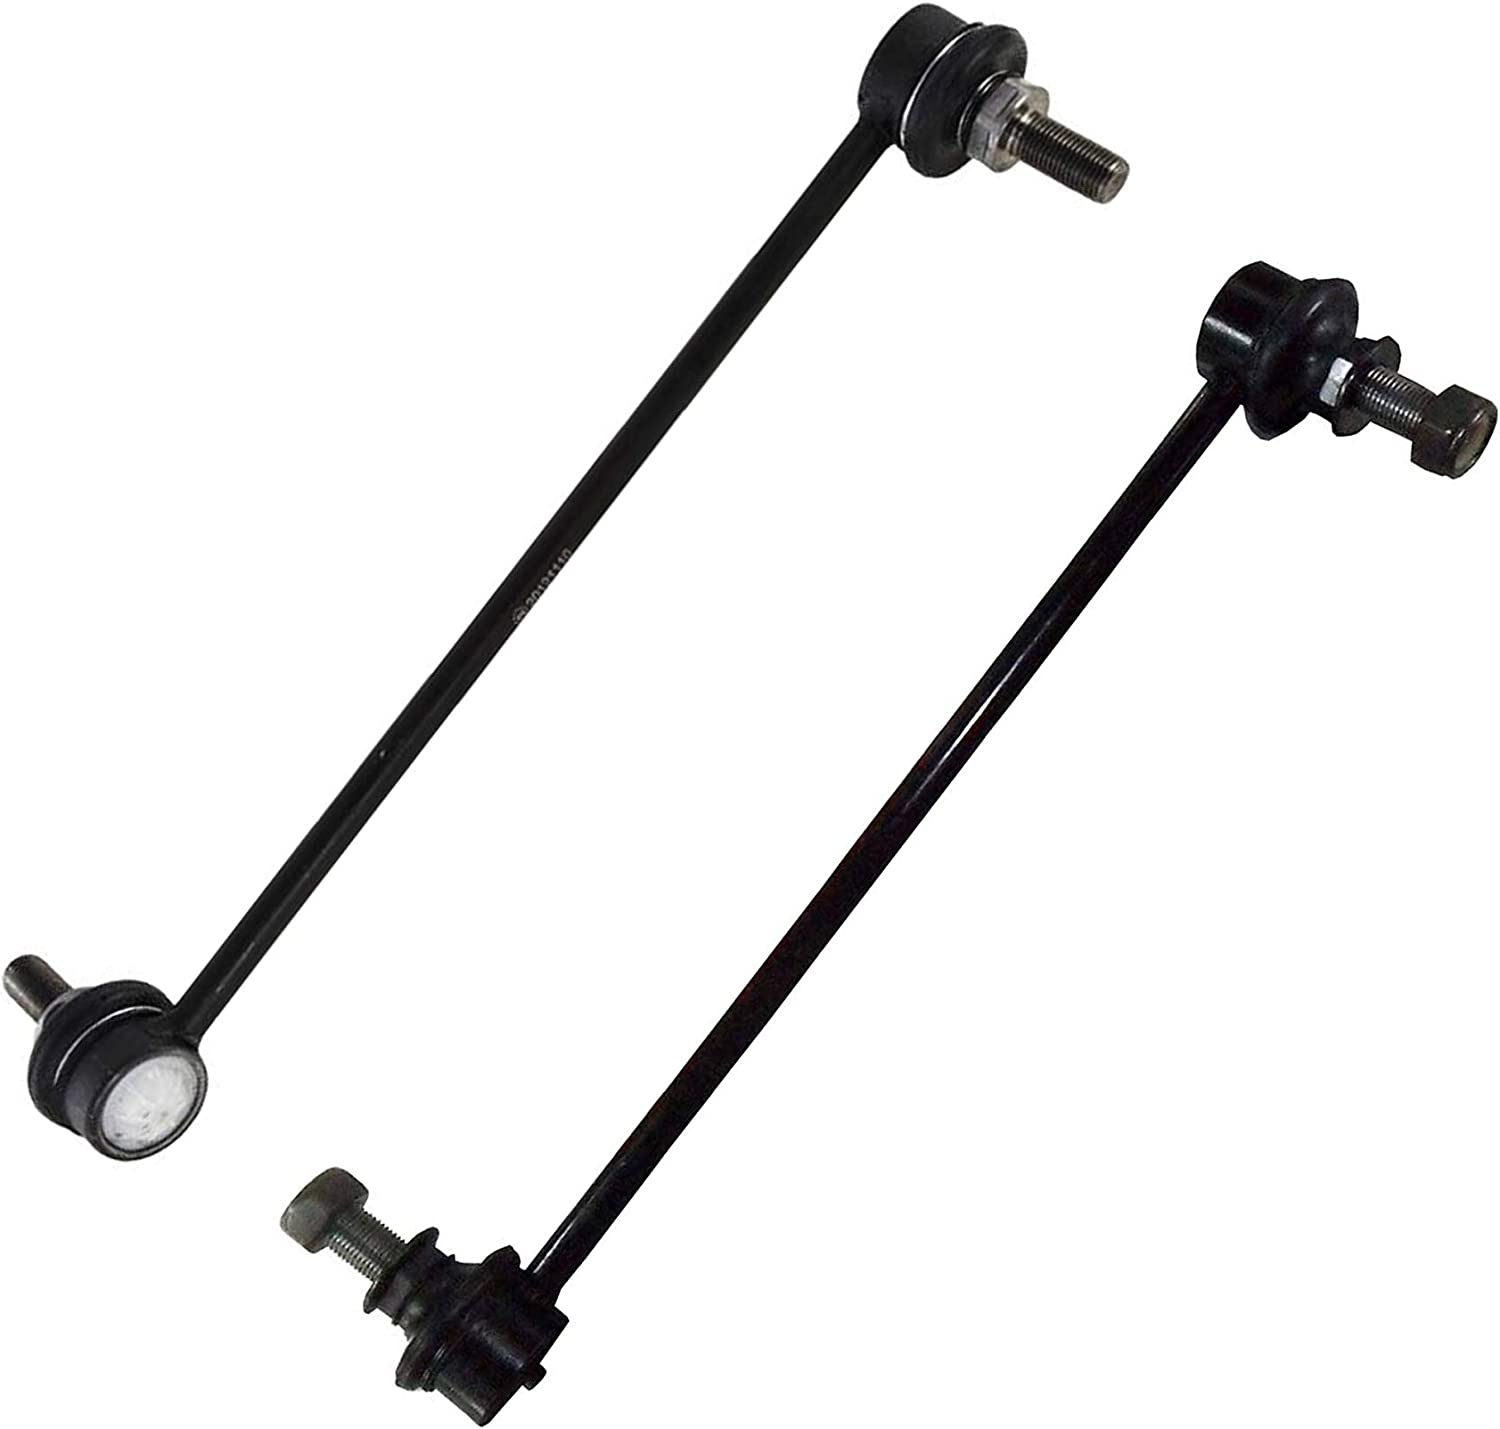 2 Pc Front Sway Bar End Link for Infiniti JX35 QX60 Nissan Altima Maxima Murano Pathfinder Rogue Rogue Select